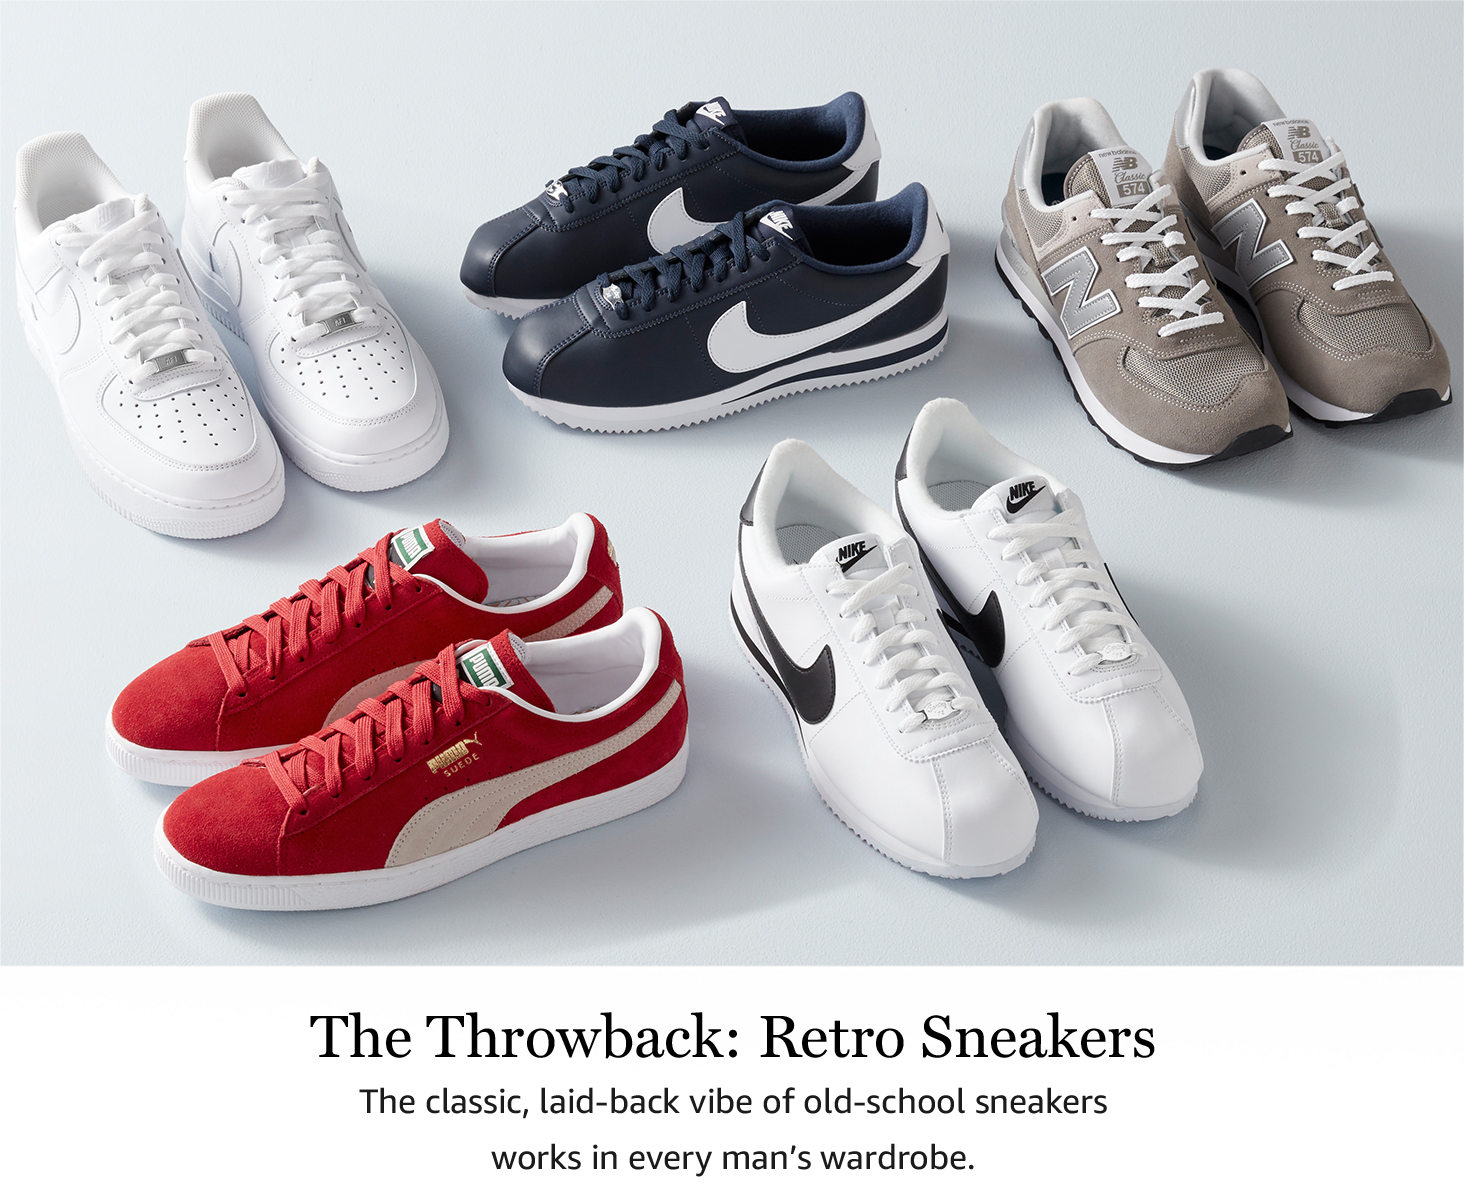 The Throwback: Retro Sneakers